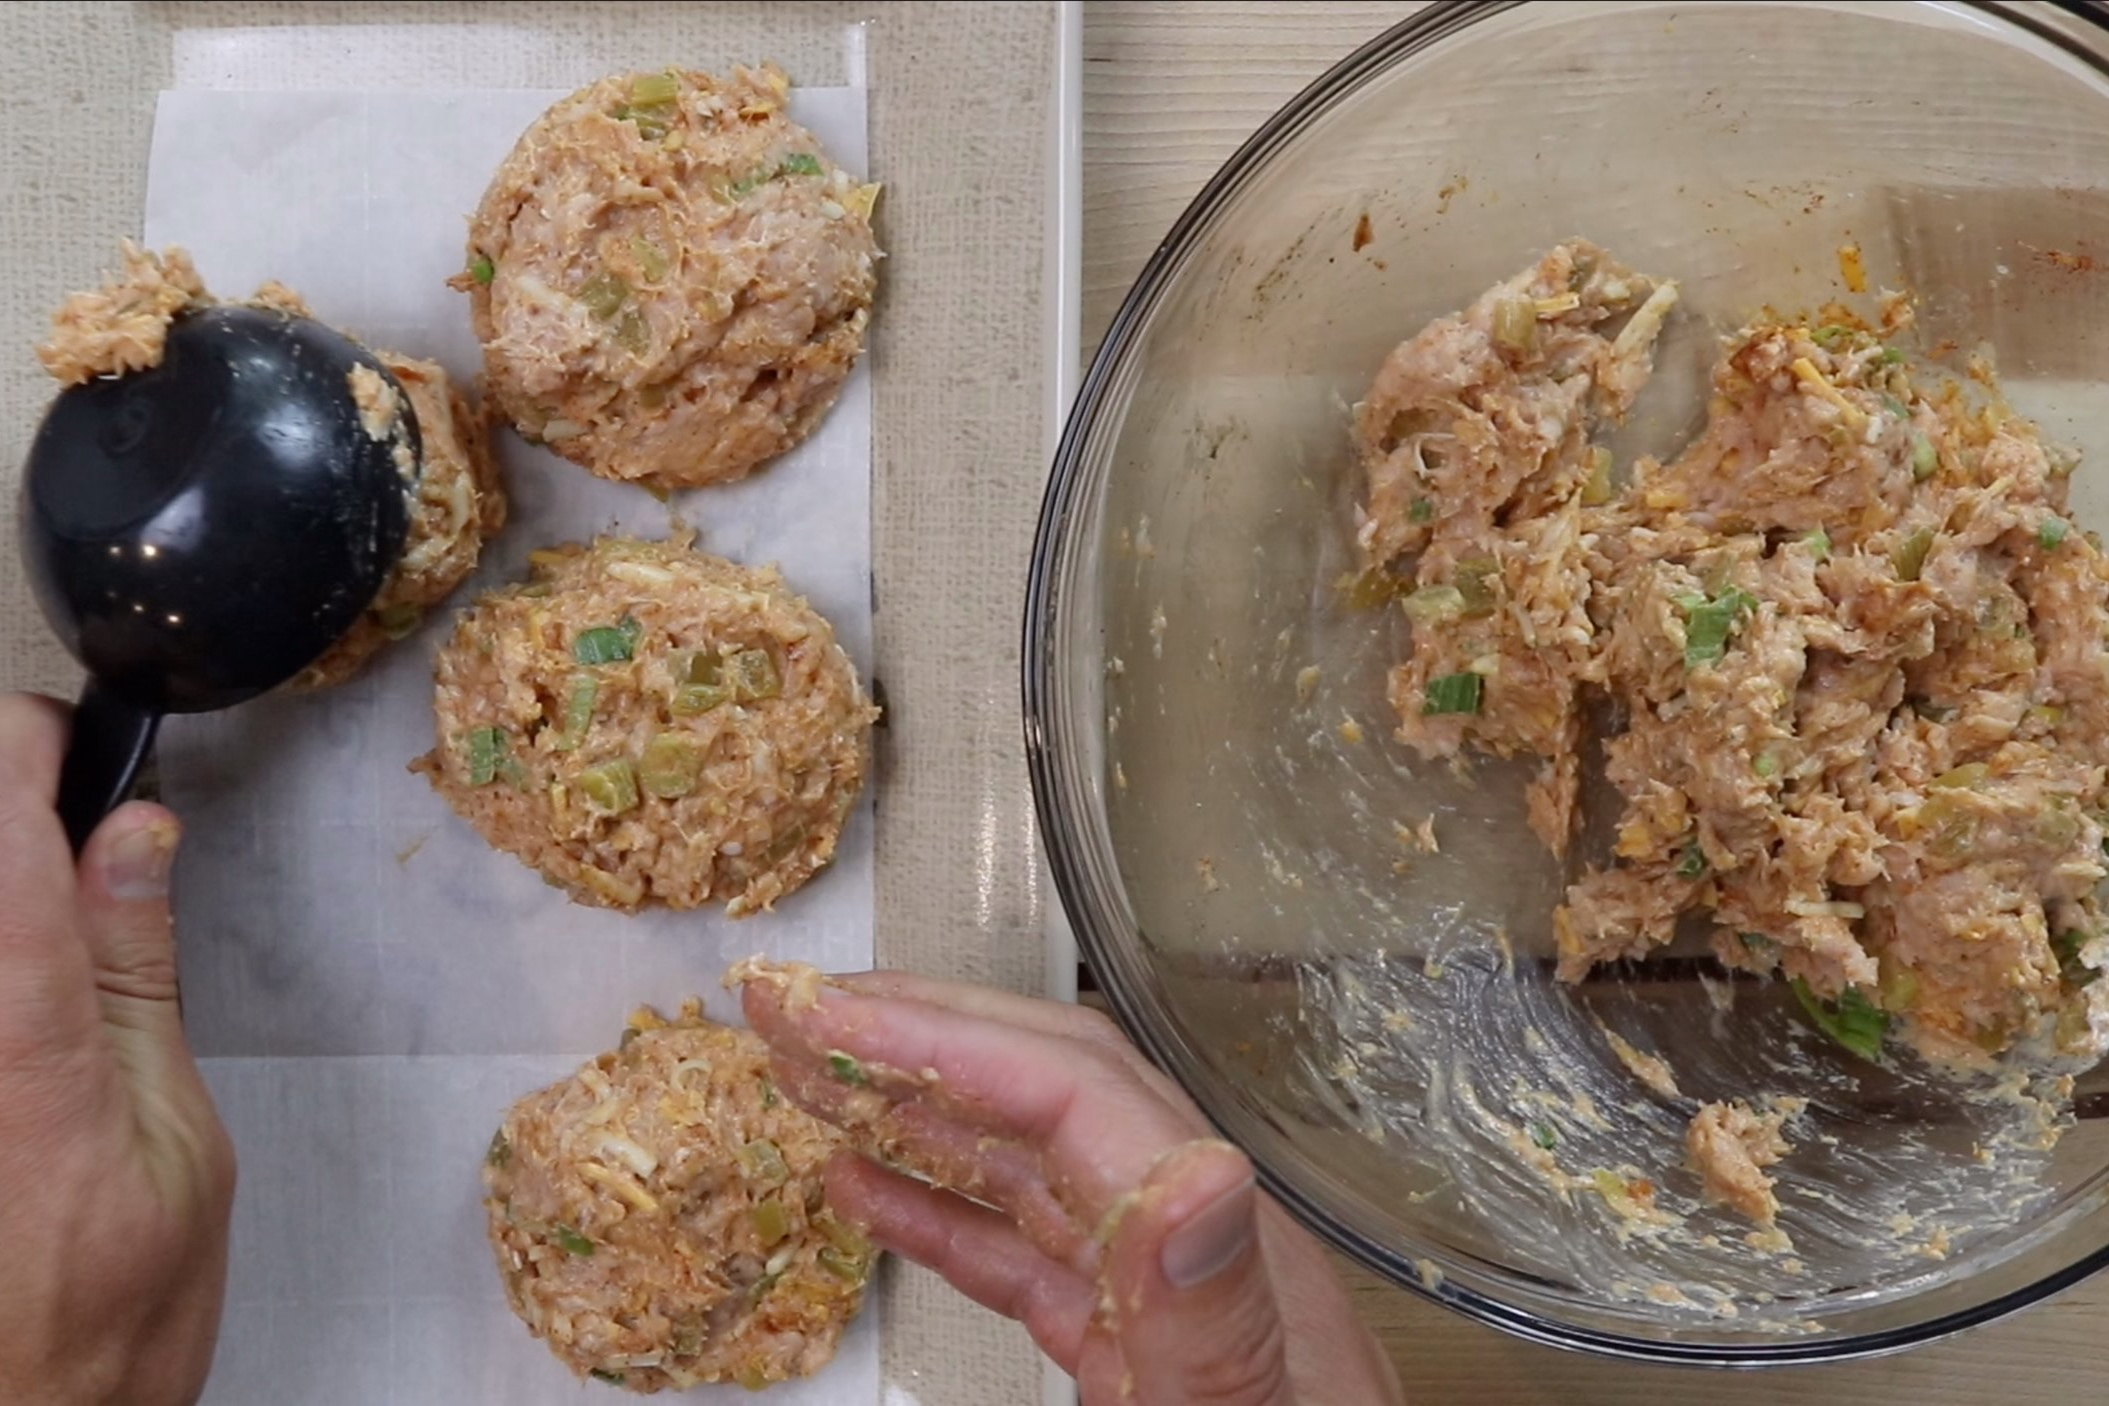 4. Using a 1/2 cup scoop or your hands, create 6 firmly packed chicken burger patties. -